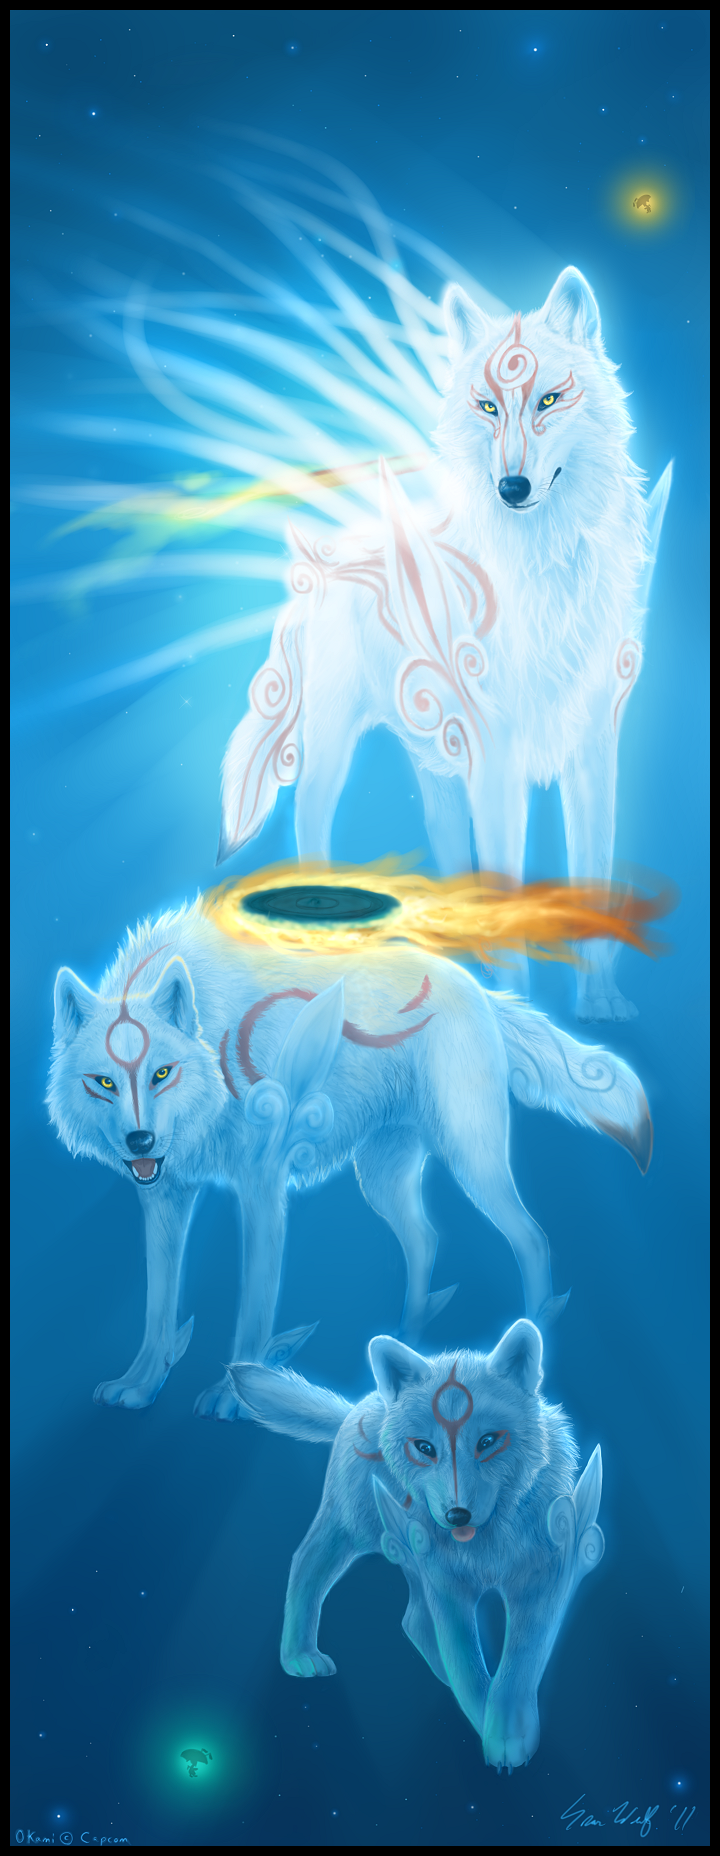 Okami - Rebirth by Starcanis